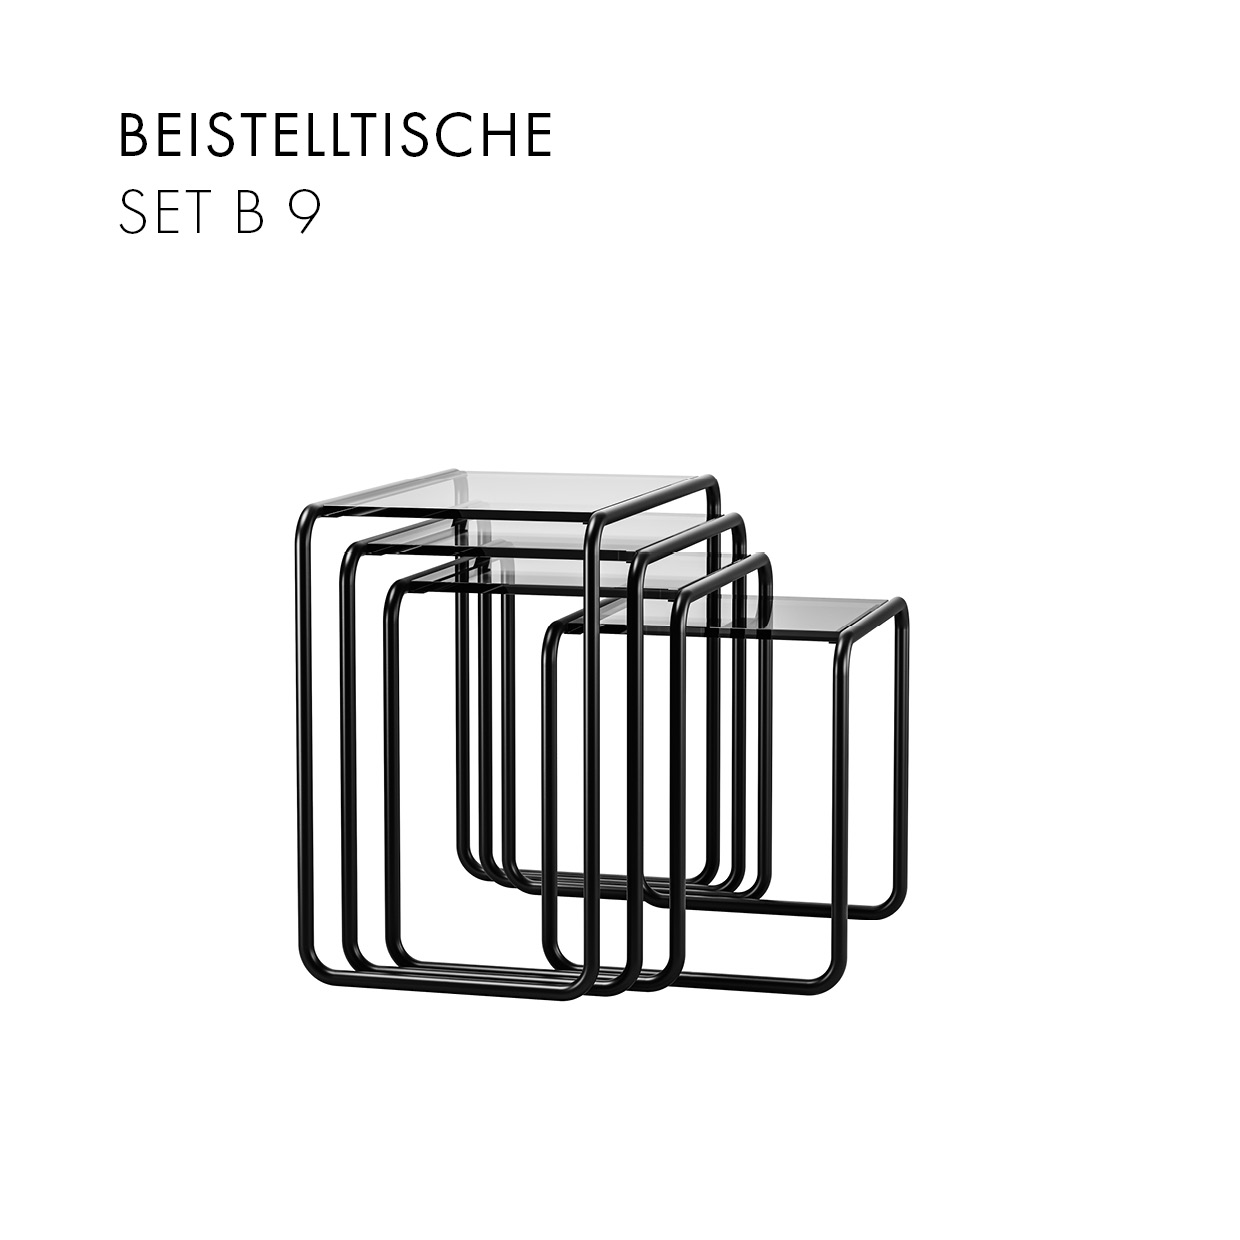 Thonet_IoT_Thonet All Seasons_beistelltisch b9